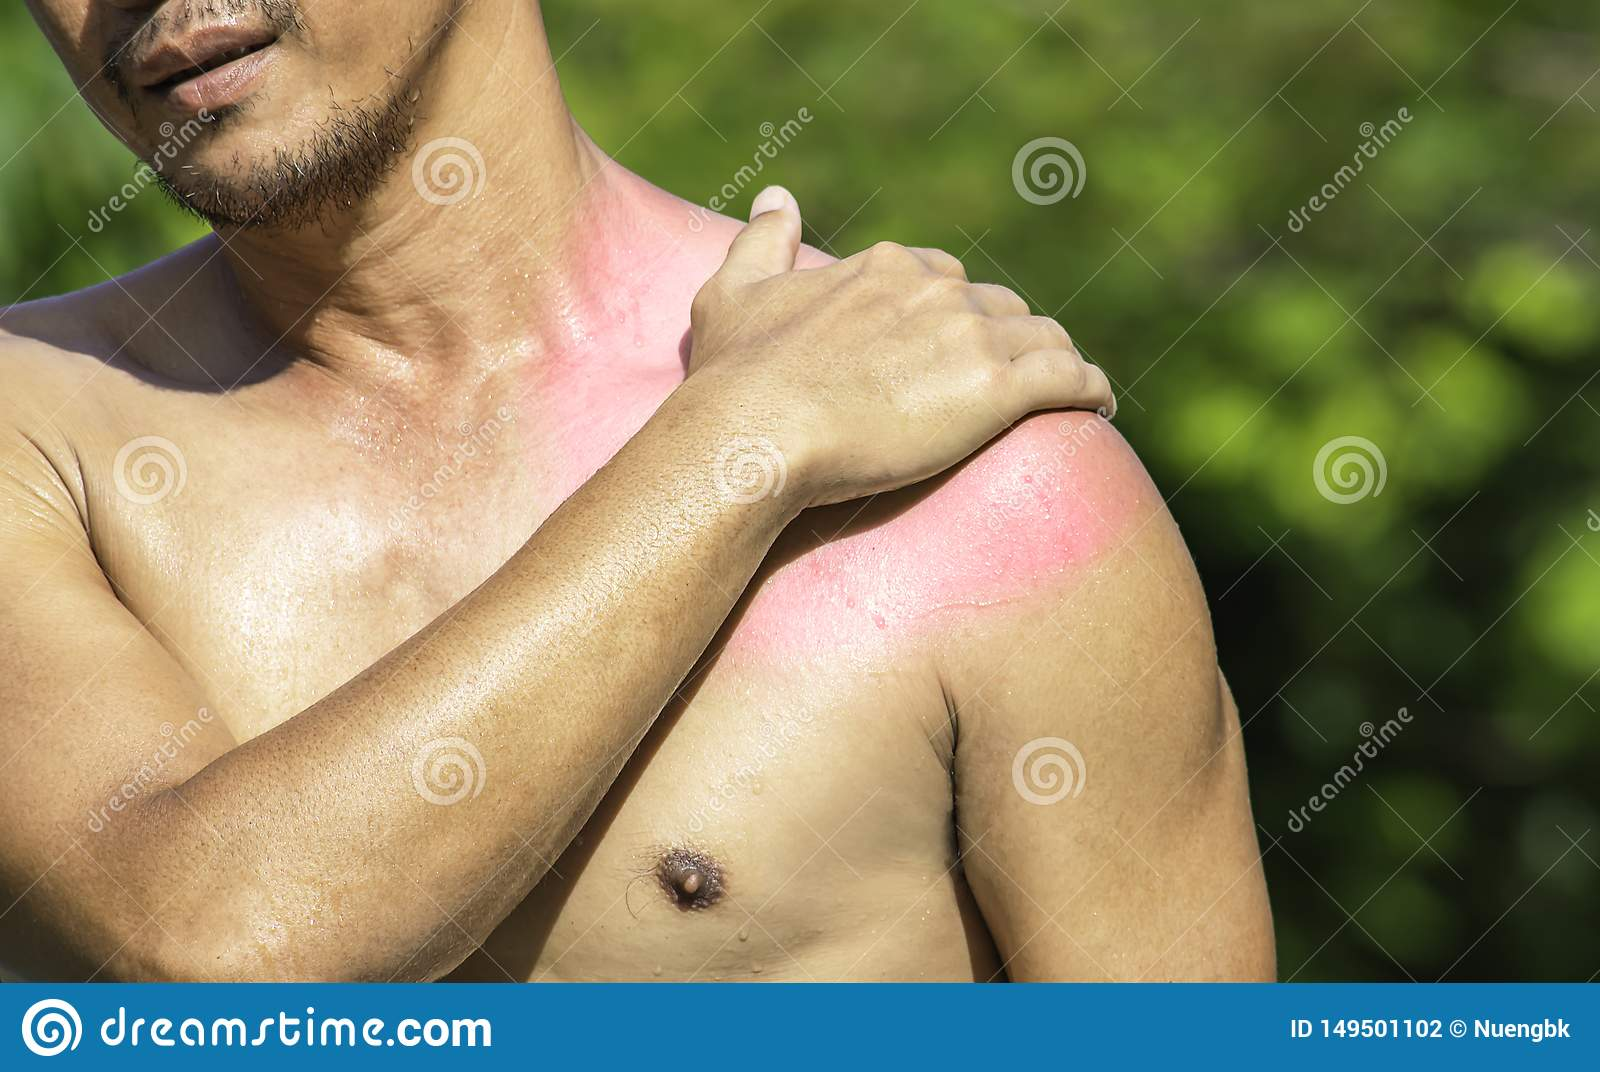 The hand grips the shoulder that inflammation from a sports injury